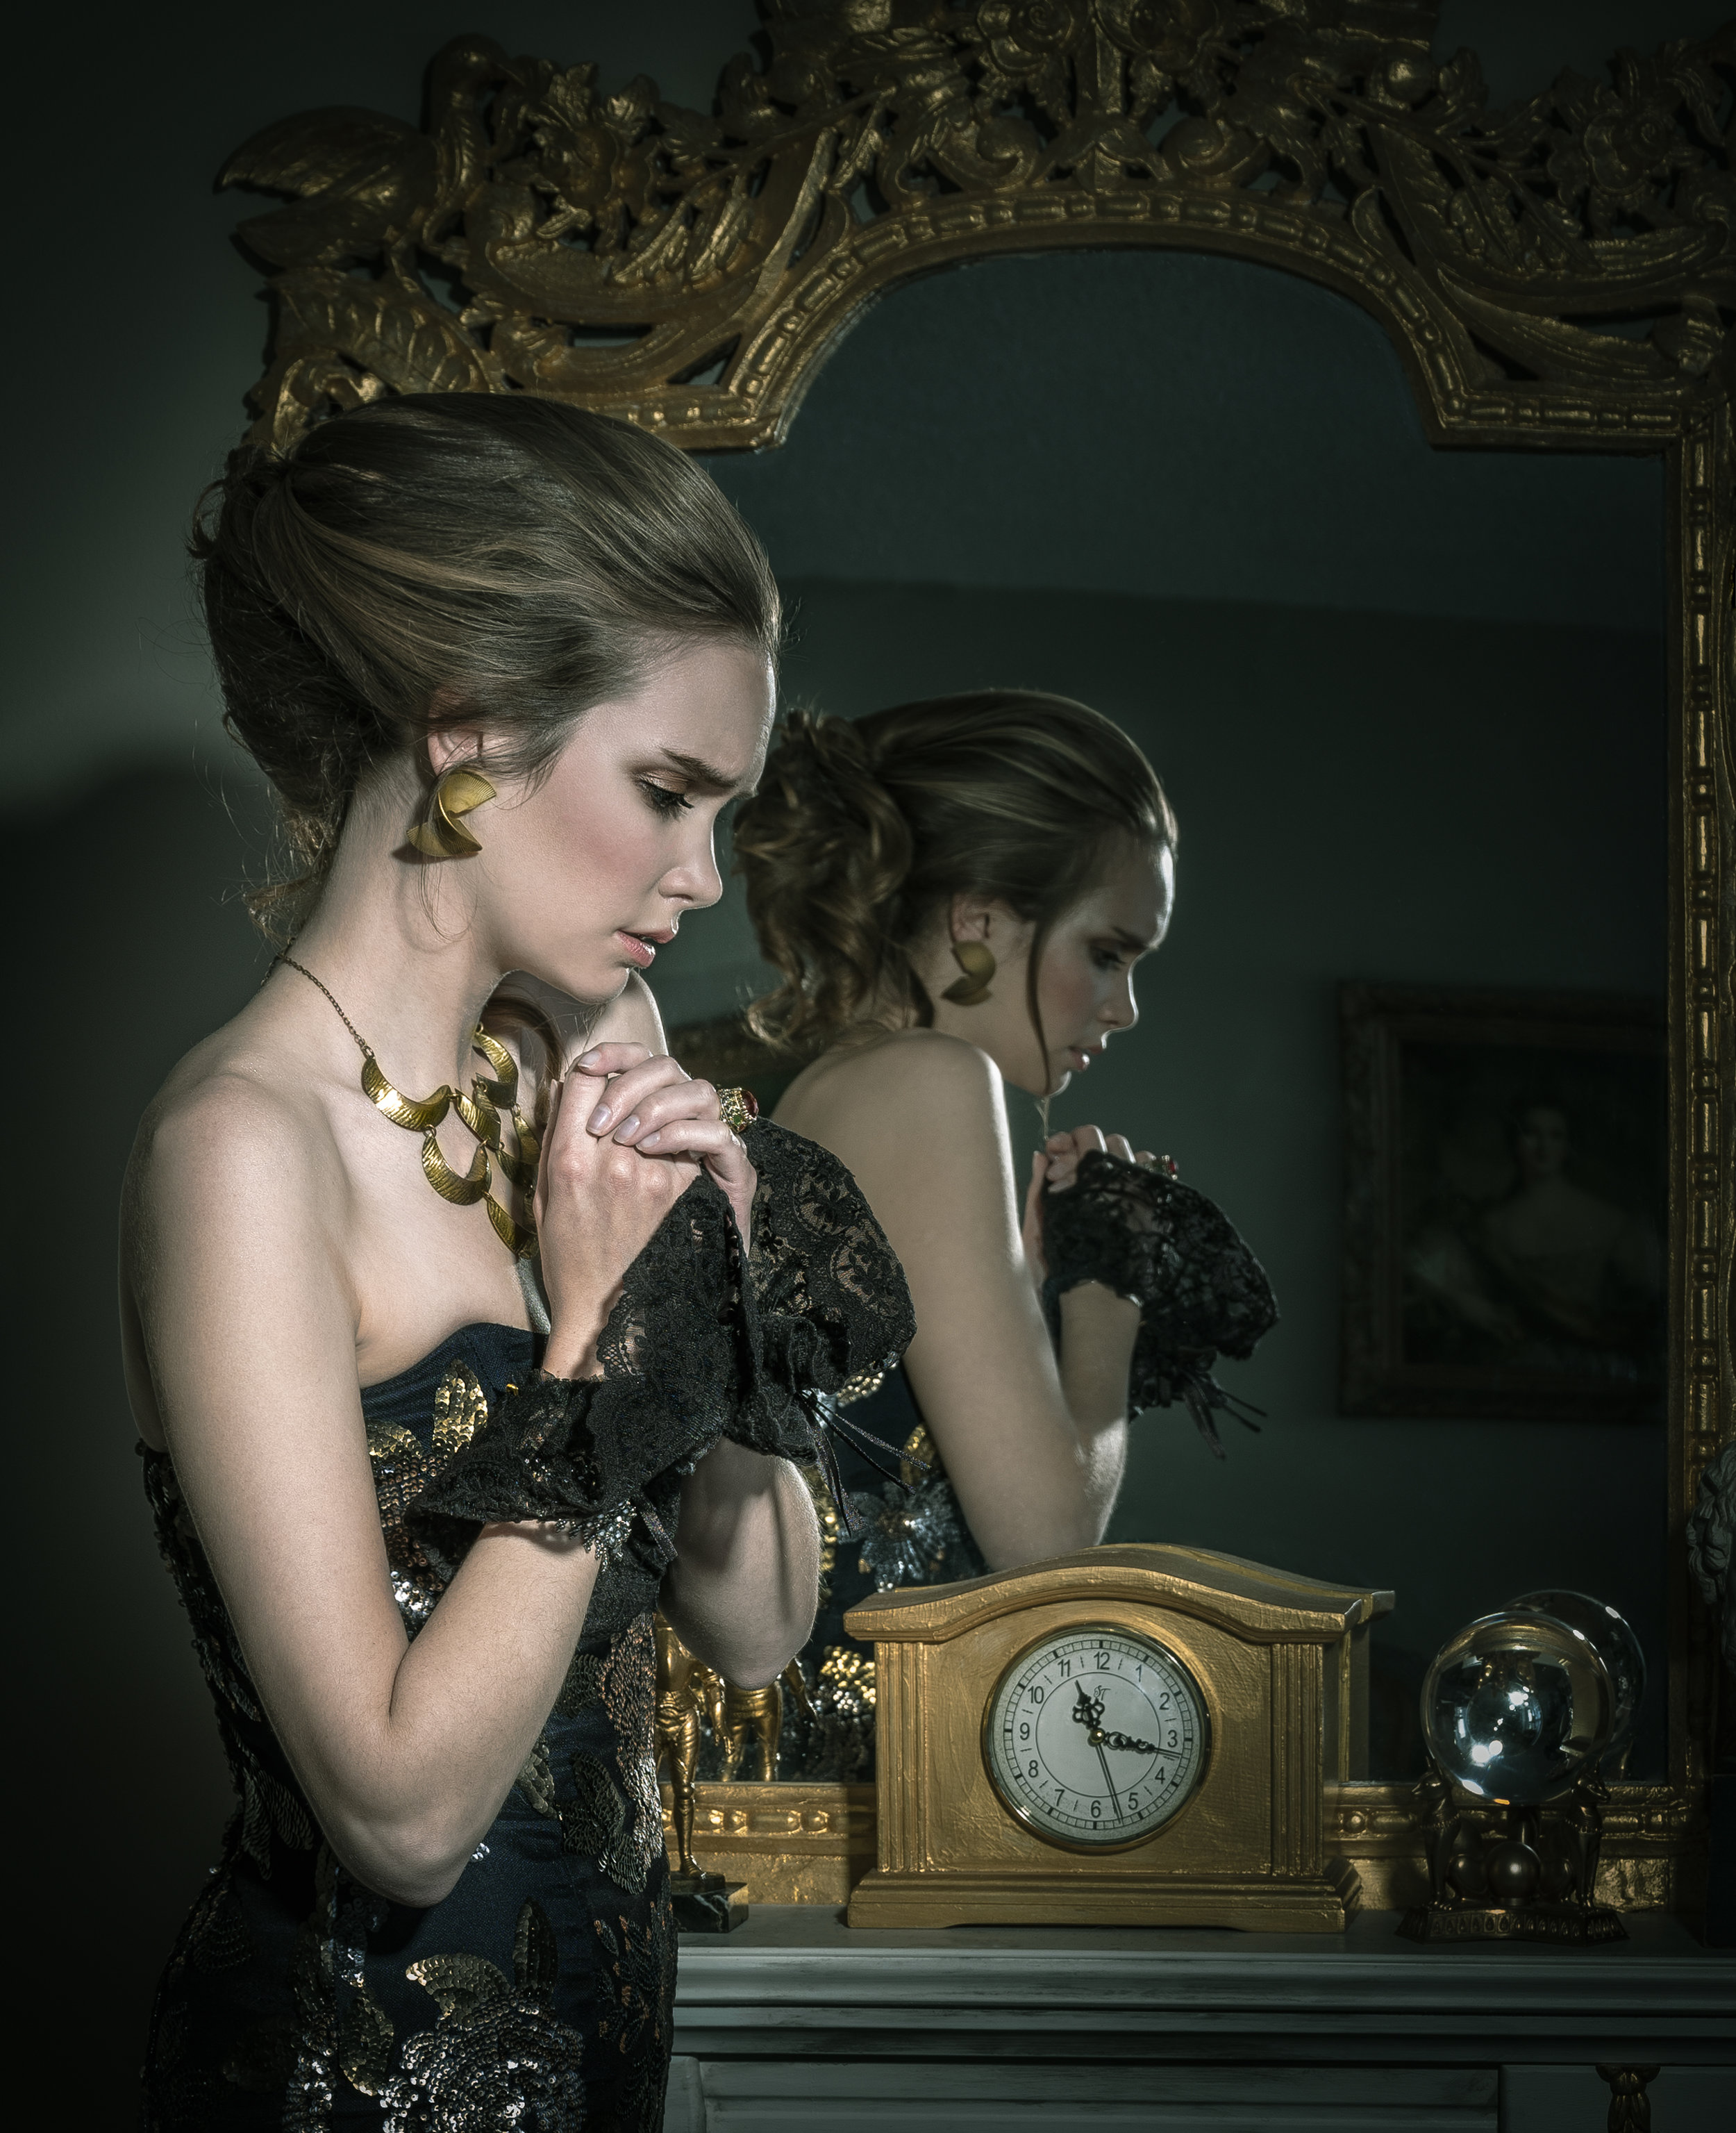 gown: Marie Copps accessories: Obsessions